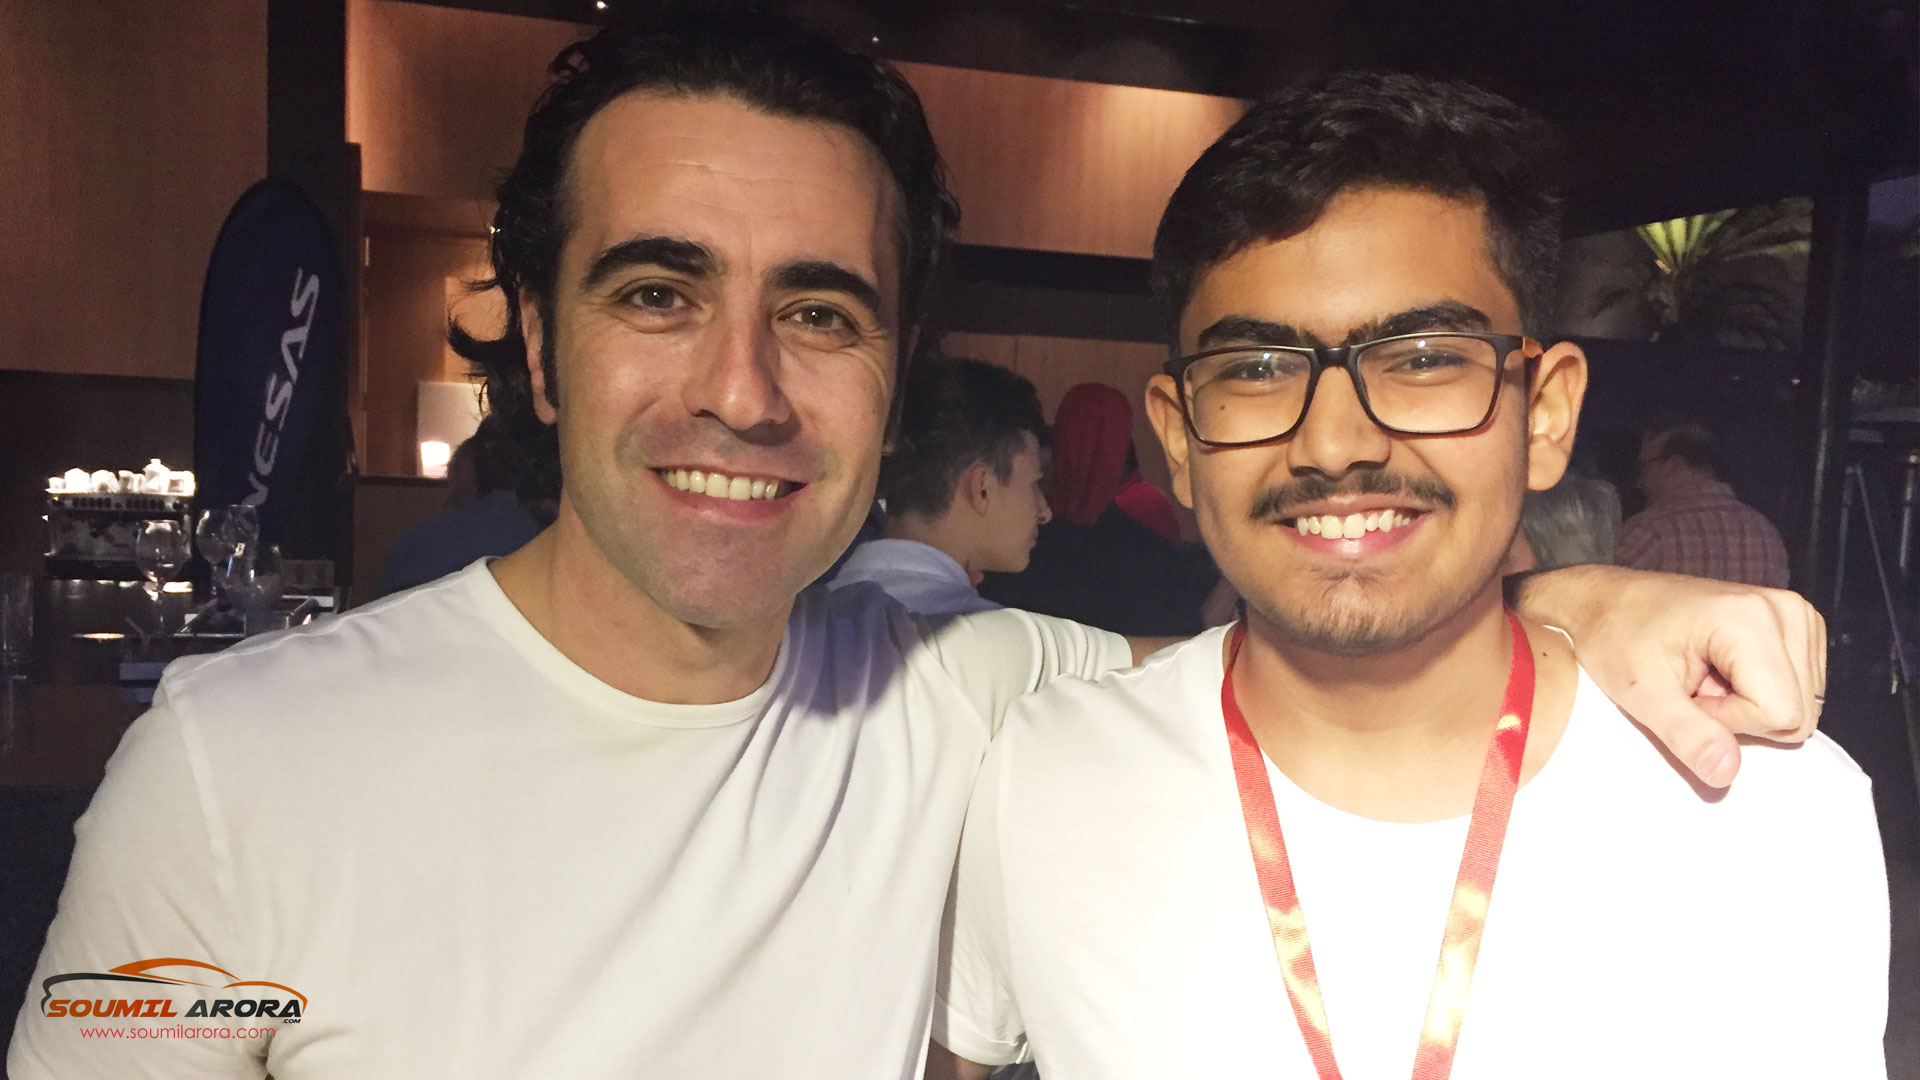 With Dario Franchitti (Four time IndyCar Series champion)